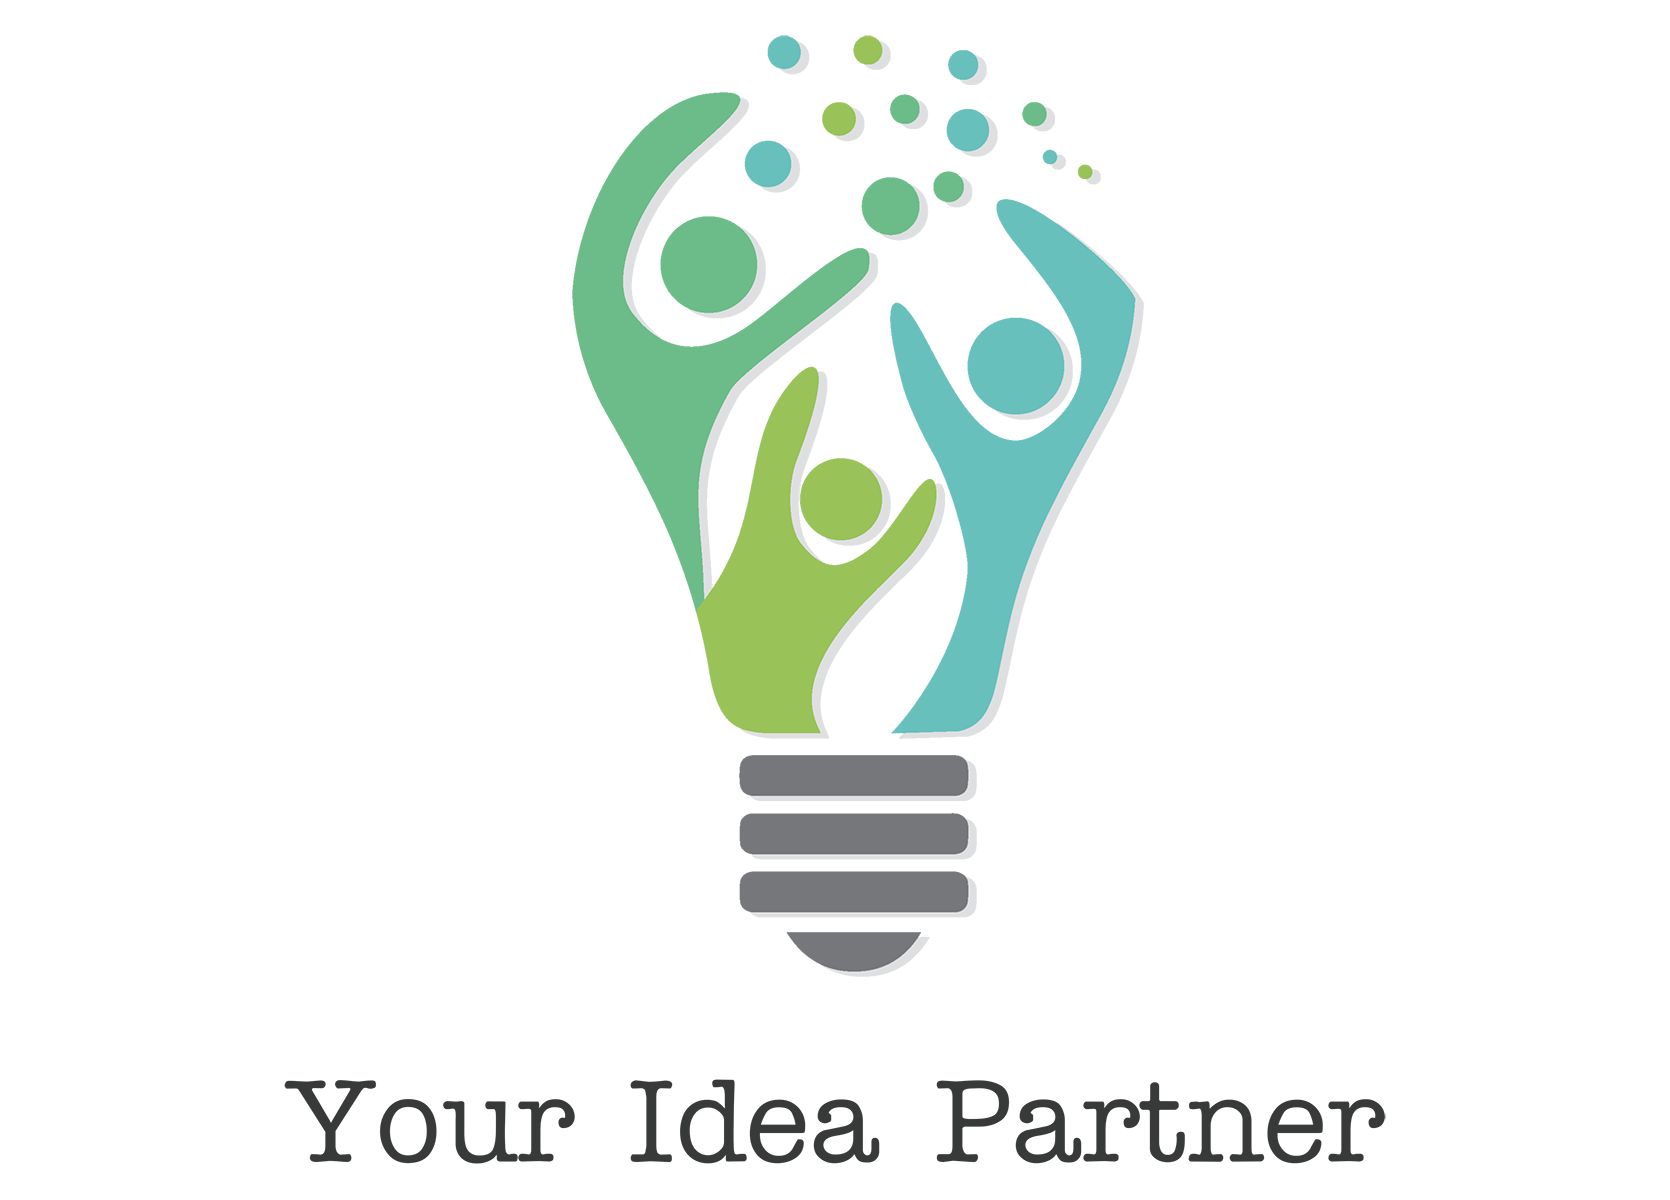 Your Idea Partner